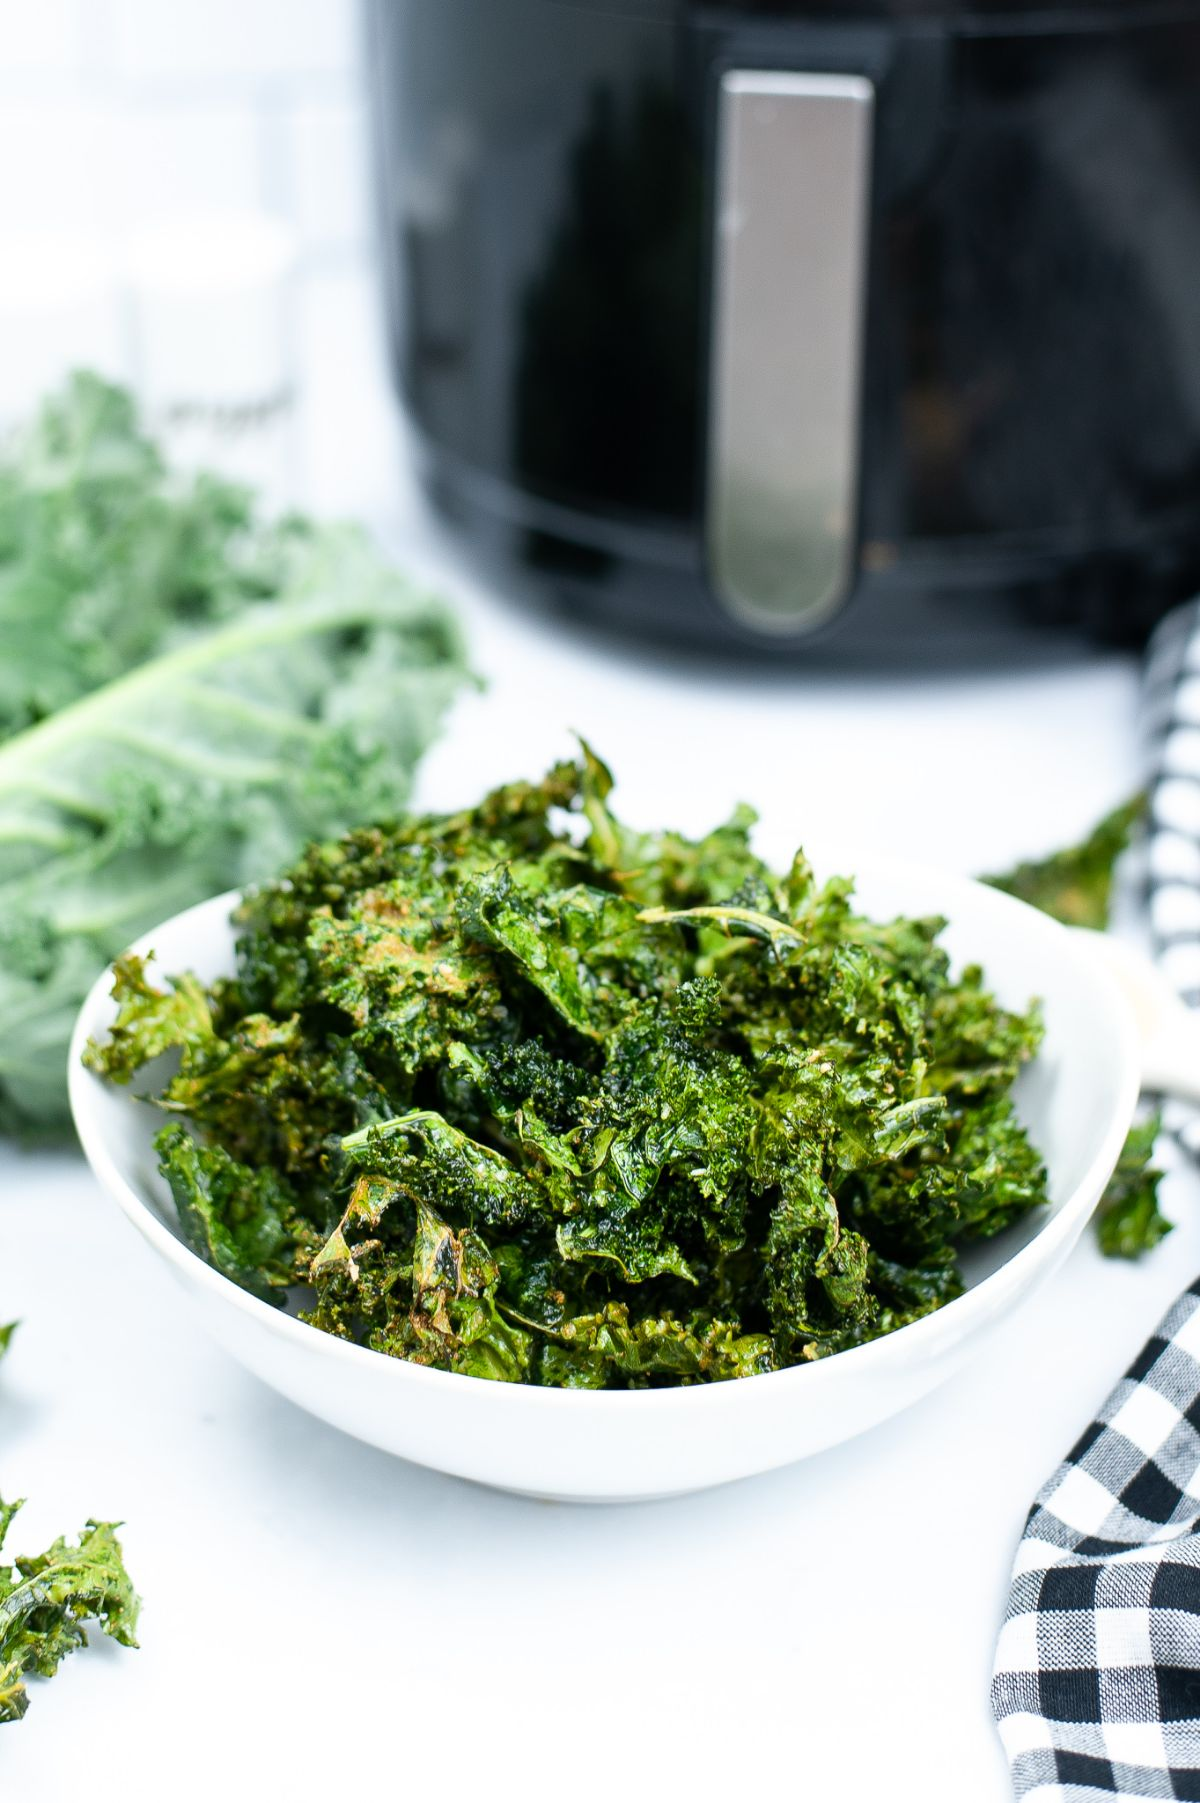 A vertical image of Air Fryer Kale Chips in a white bowl with a blurred air fryer in the background.